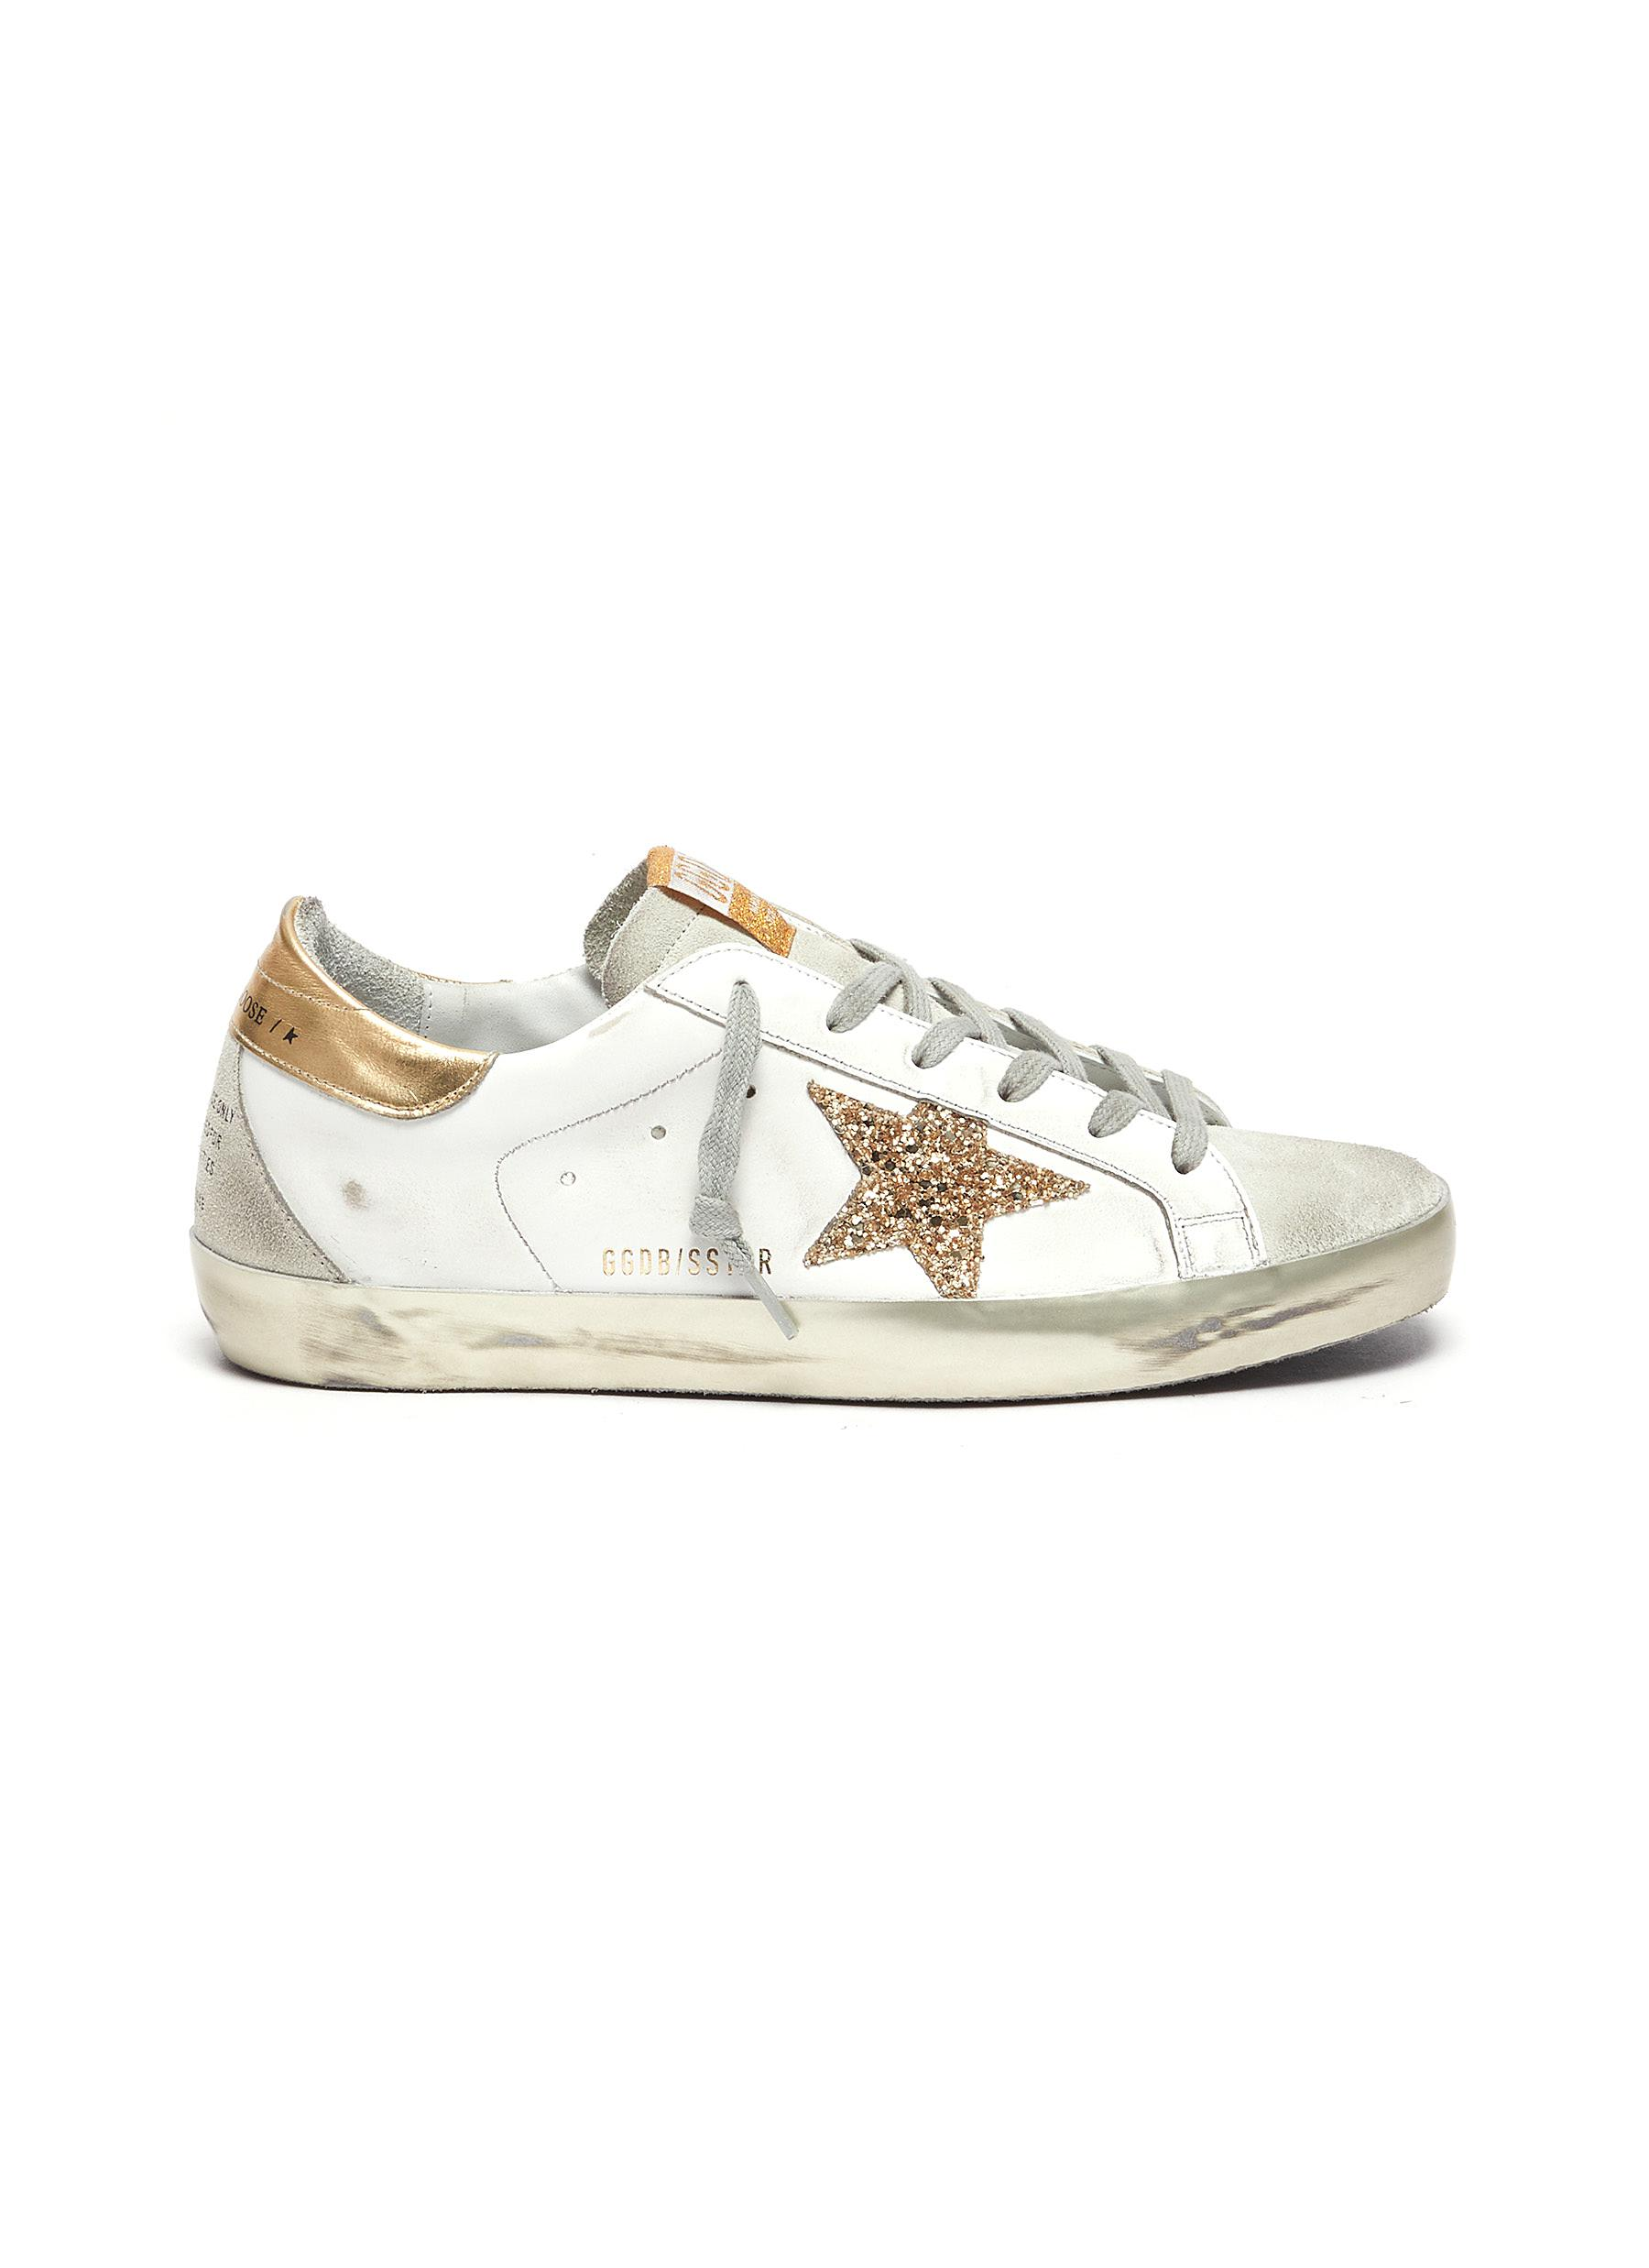 'Super-Star' Metallic Accent Distressed Leather Sneakers